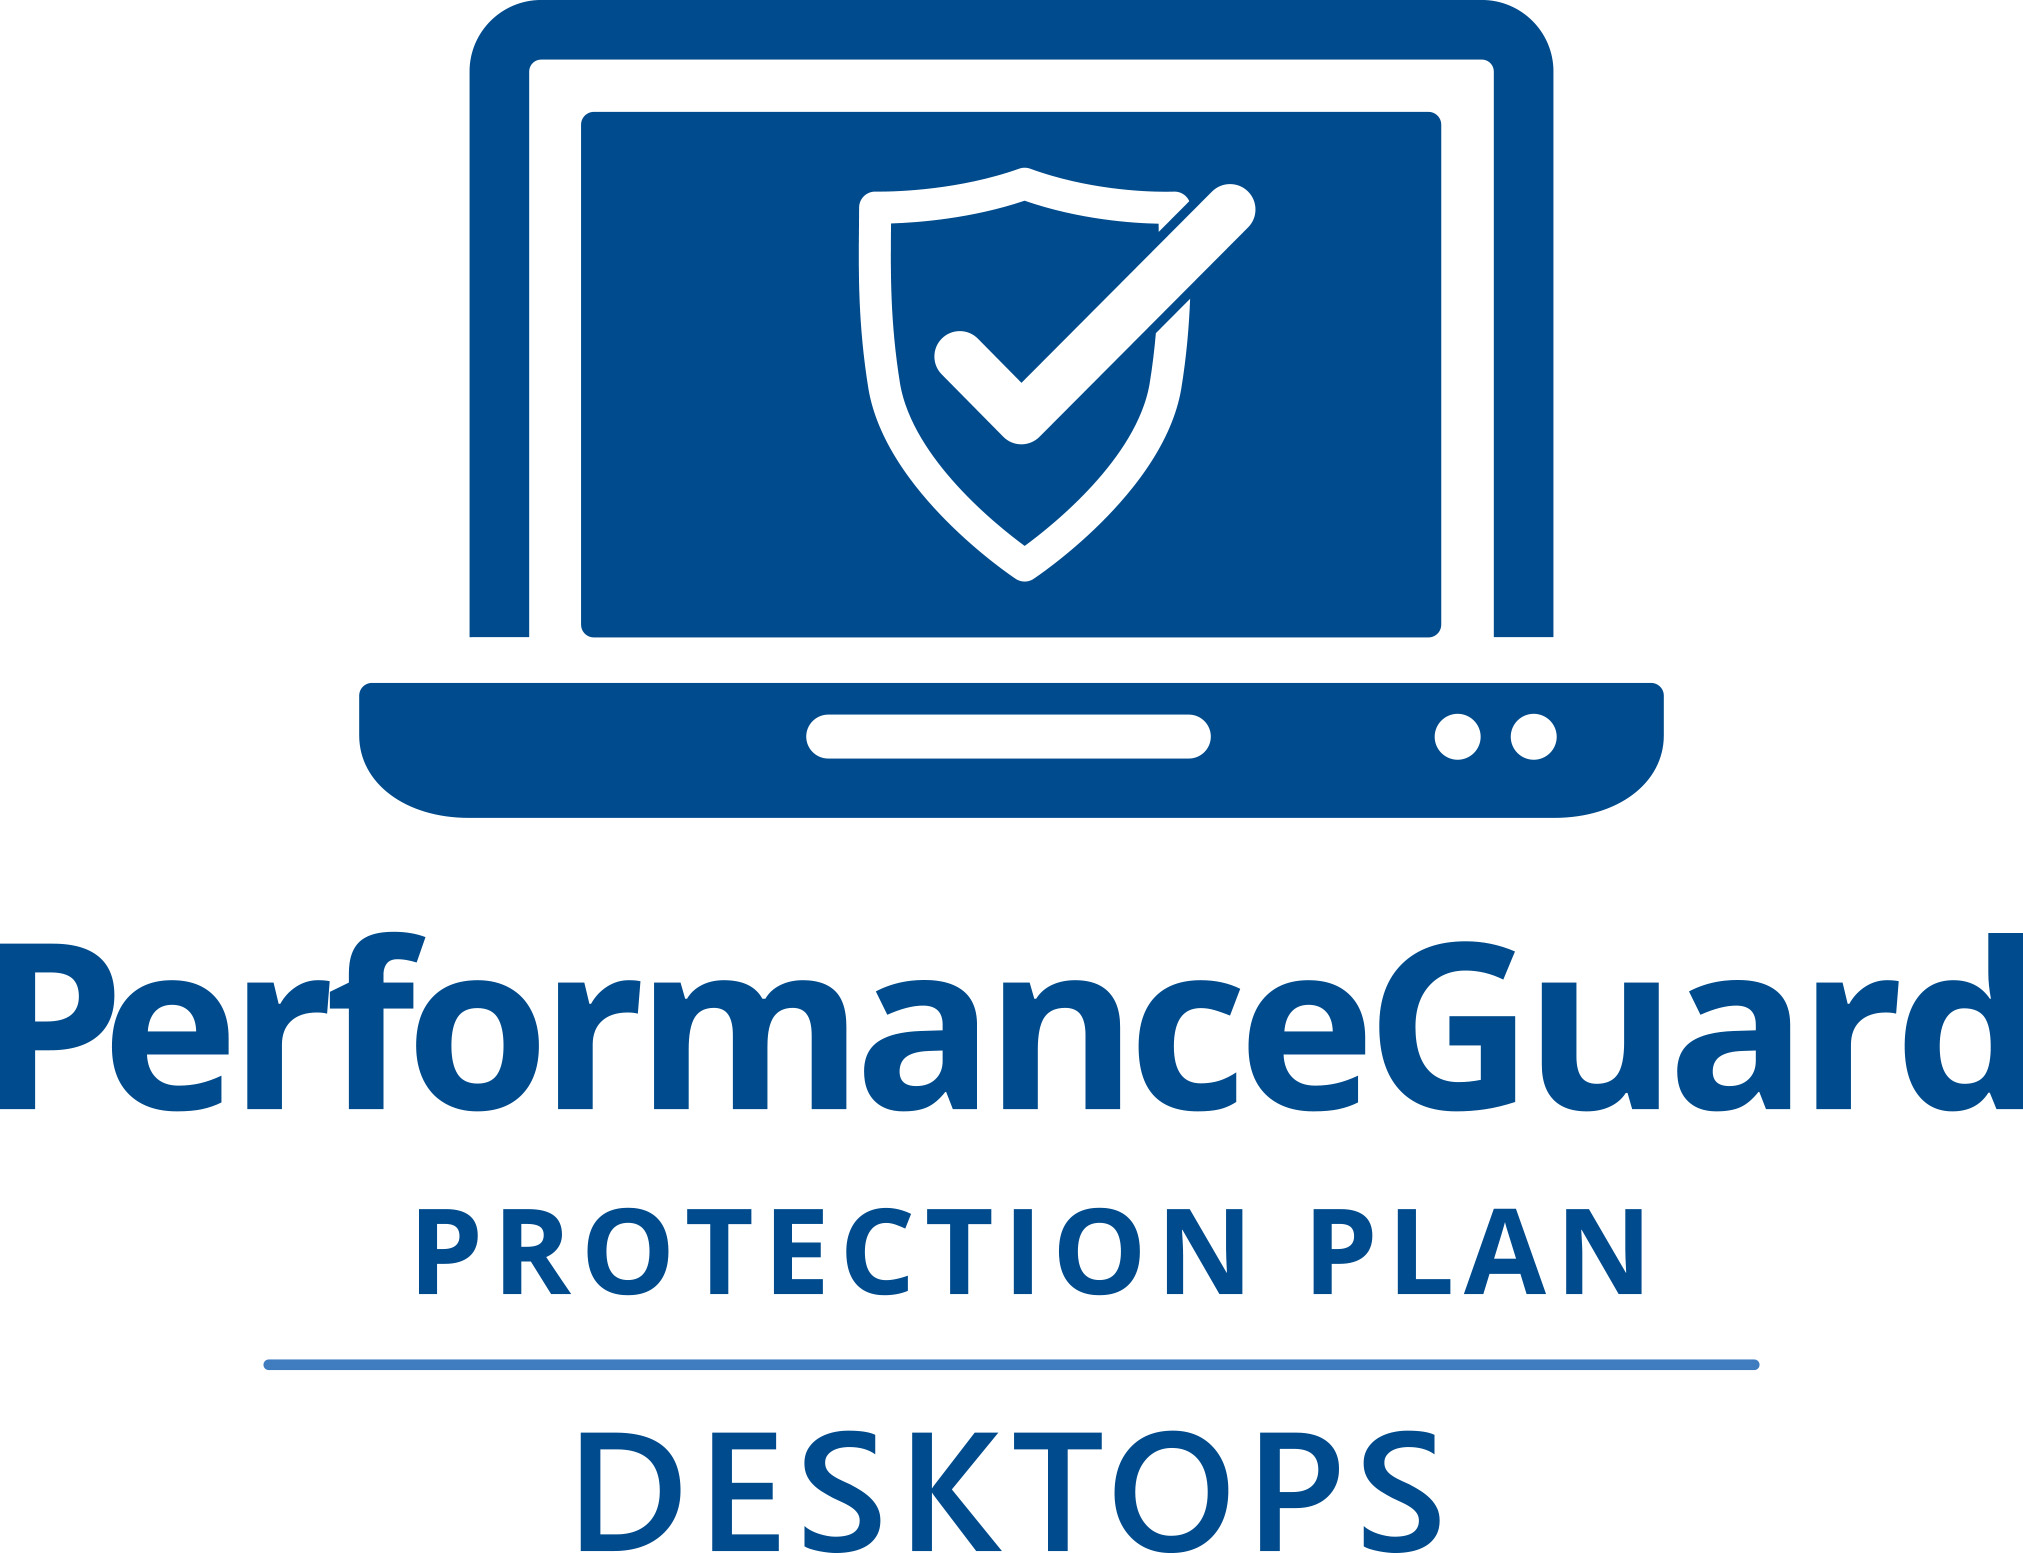 PerformanceGuard Protection Plan for Desktops Deal